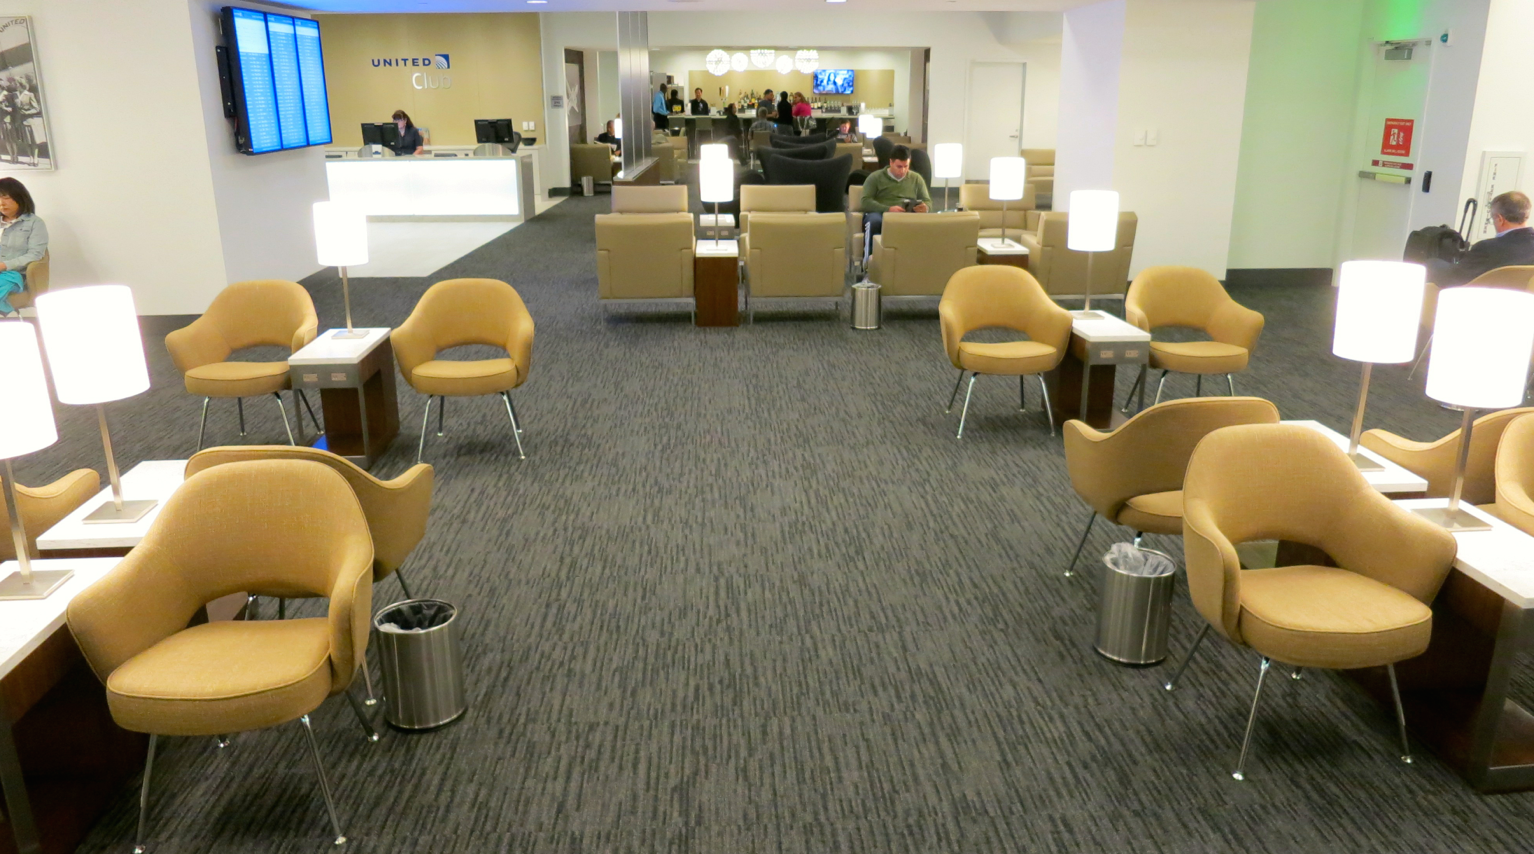 The new United Club color palette of gold, gray, white and putty on display (Photo: Chris McGinnis)